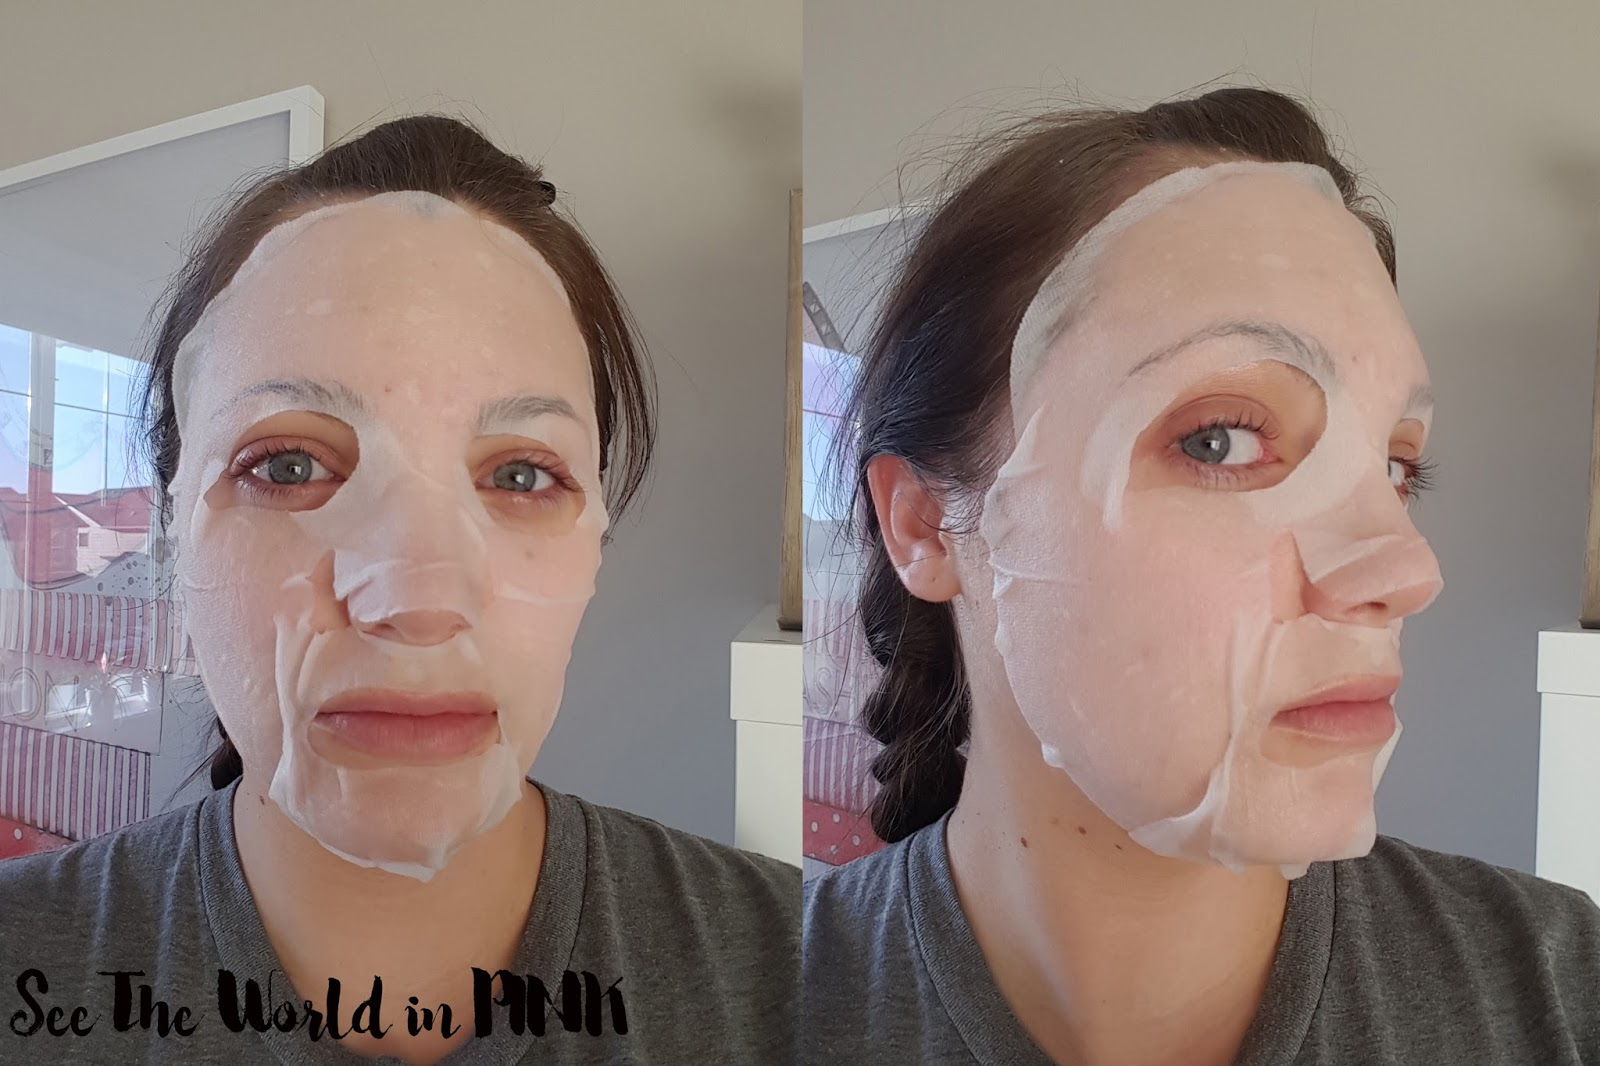 SNP Bird's Nest Aqua Ampoule Mask review